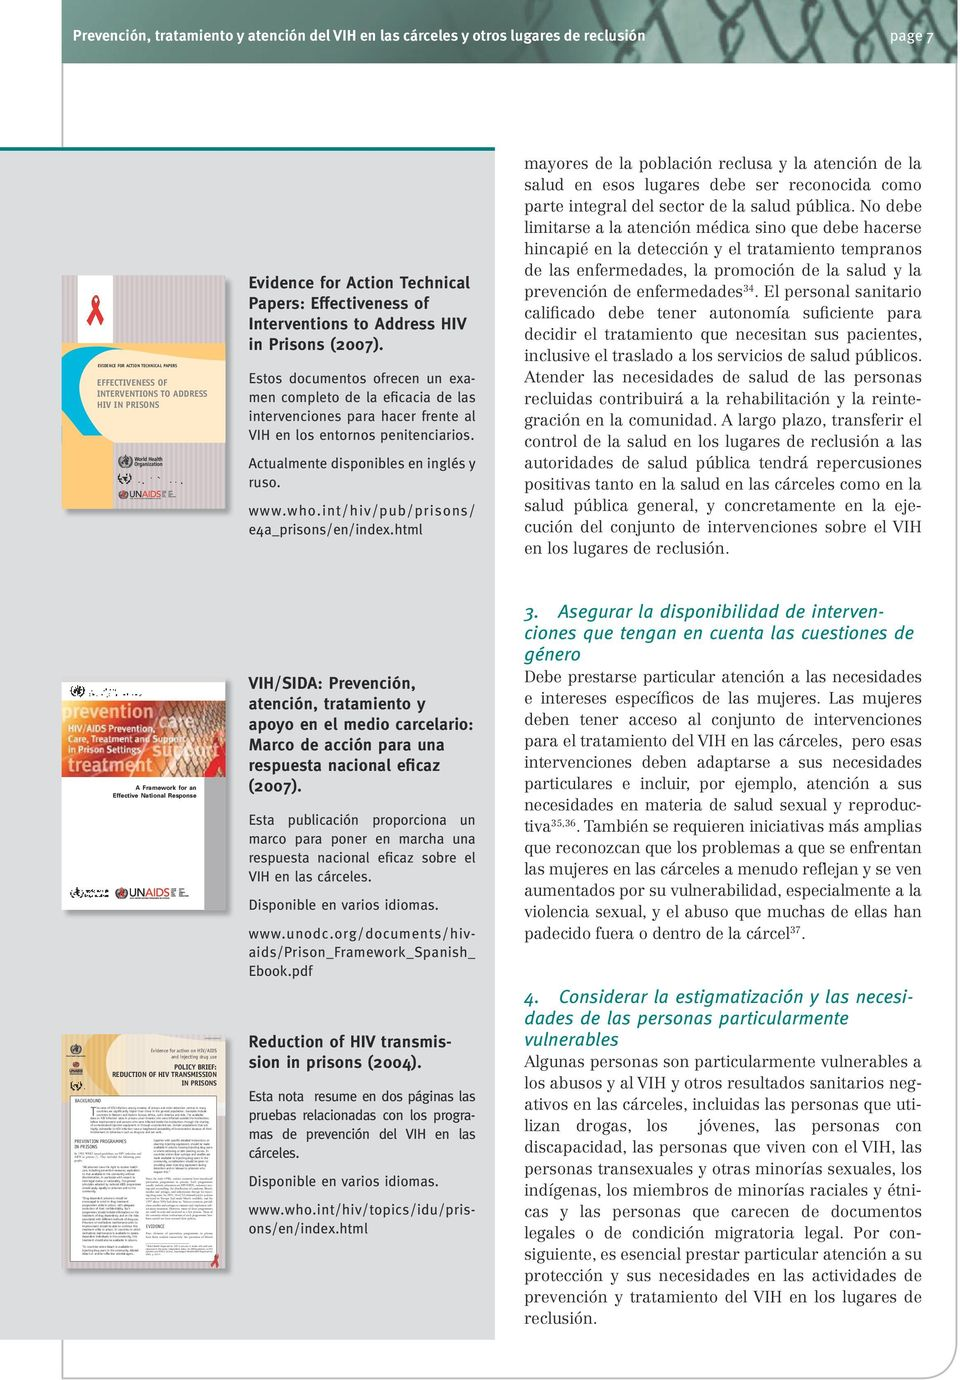 05 Prevención, tratamiento y atención del VIH en las cárceles y otros lugares de reclusión page 7 EVIDENCE FOR ACTION TECHNICAL PAPERS EFFECTIVENESS OF INTERVENTIONS TO ADDRESS HIV IN PRISONS